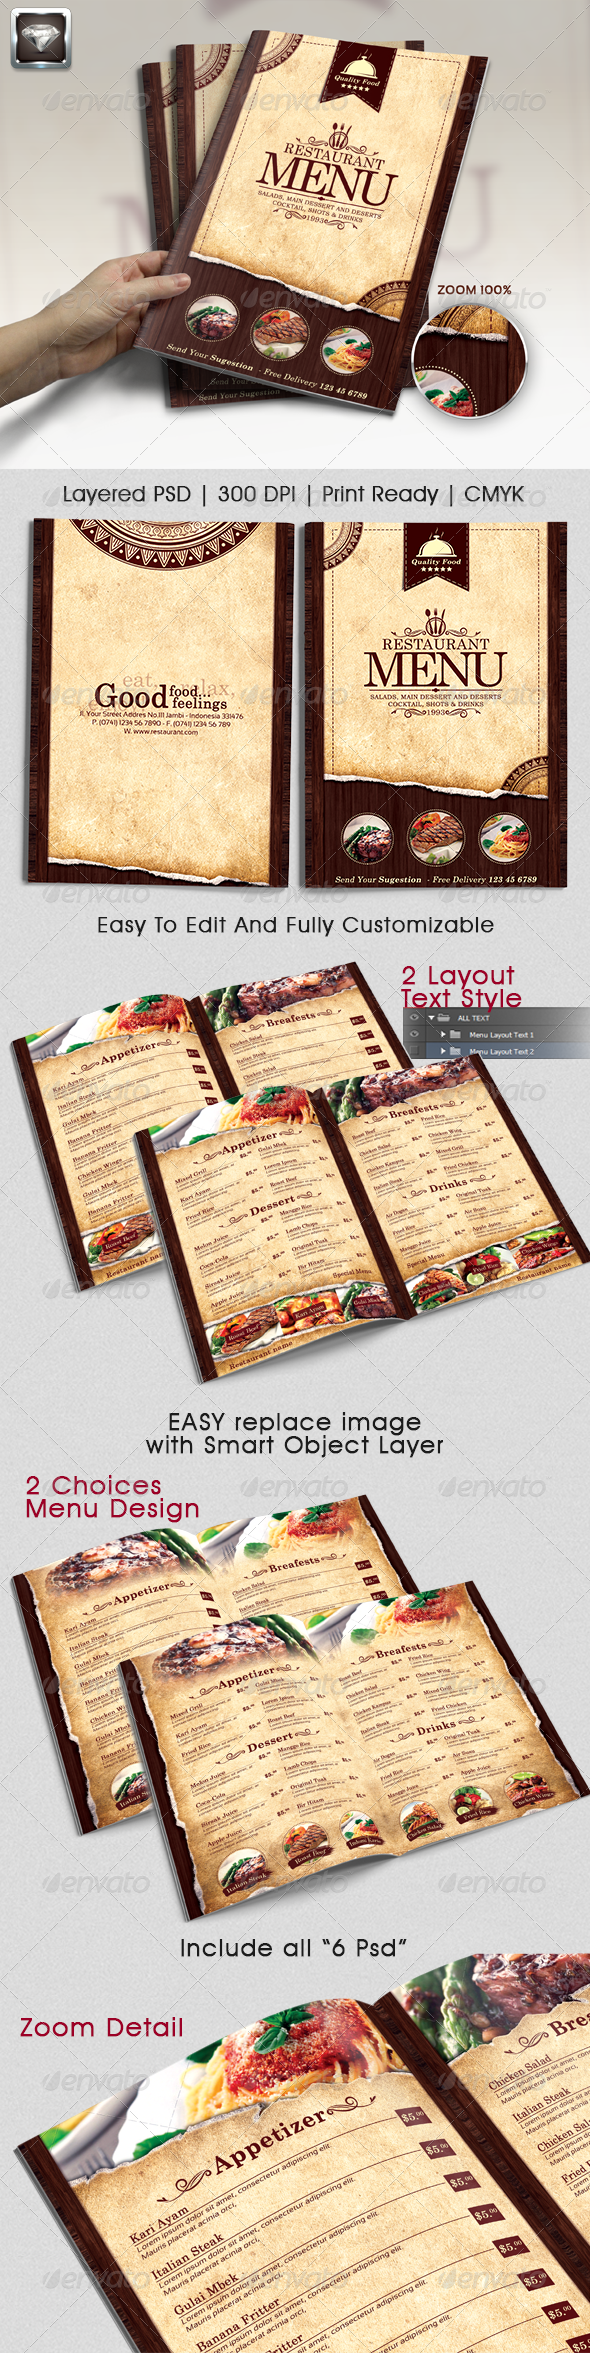 Restaurant Menu Templates Graphics Designs Templates Previewok  Restaurant Menu Templates. How To Make A Restaurant Menu On Microsoft  Word How To Make A ...  How To Make A Food Menu On Microsoft Word